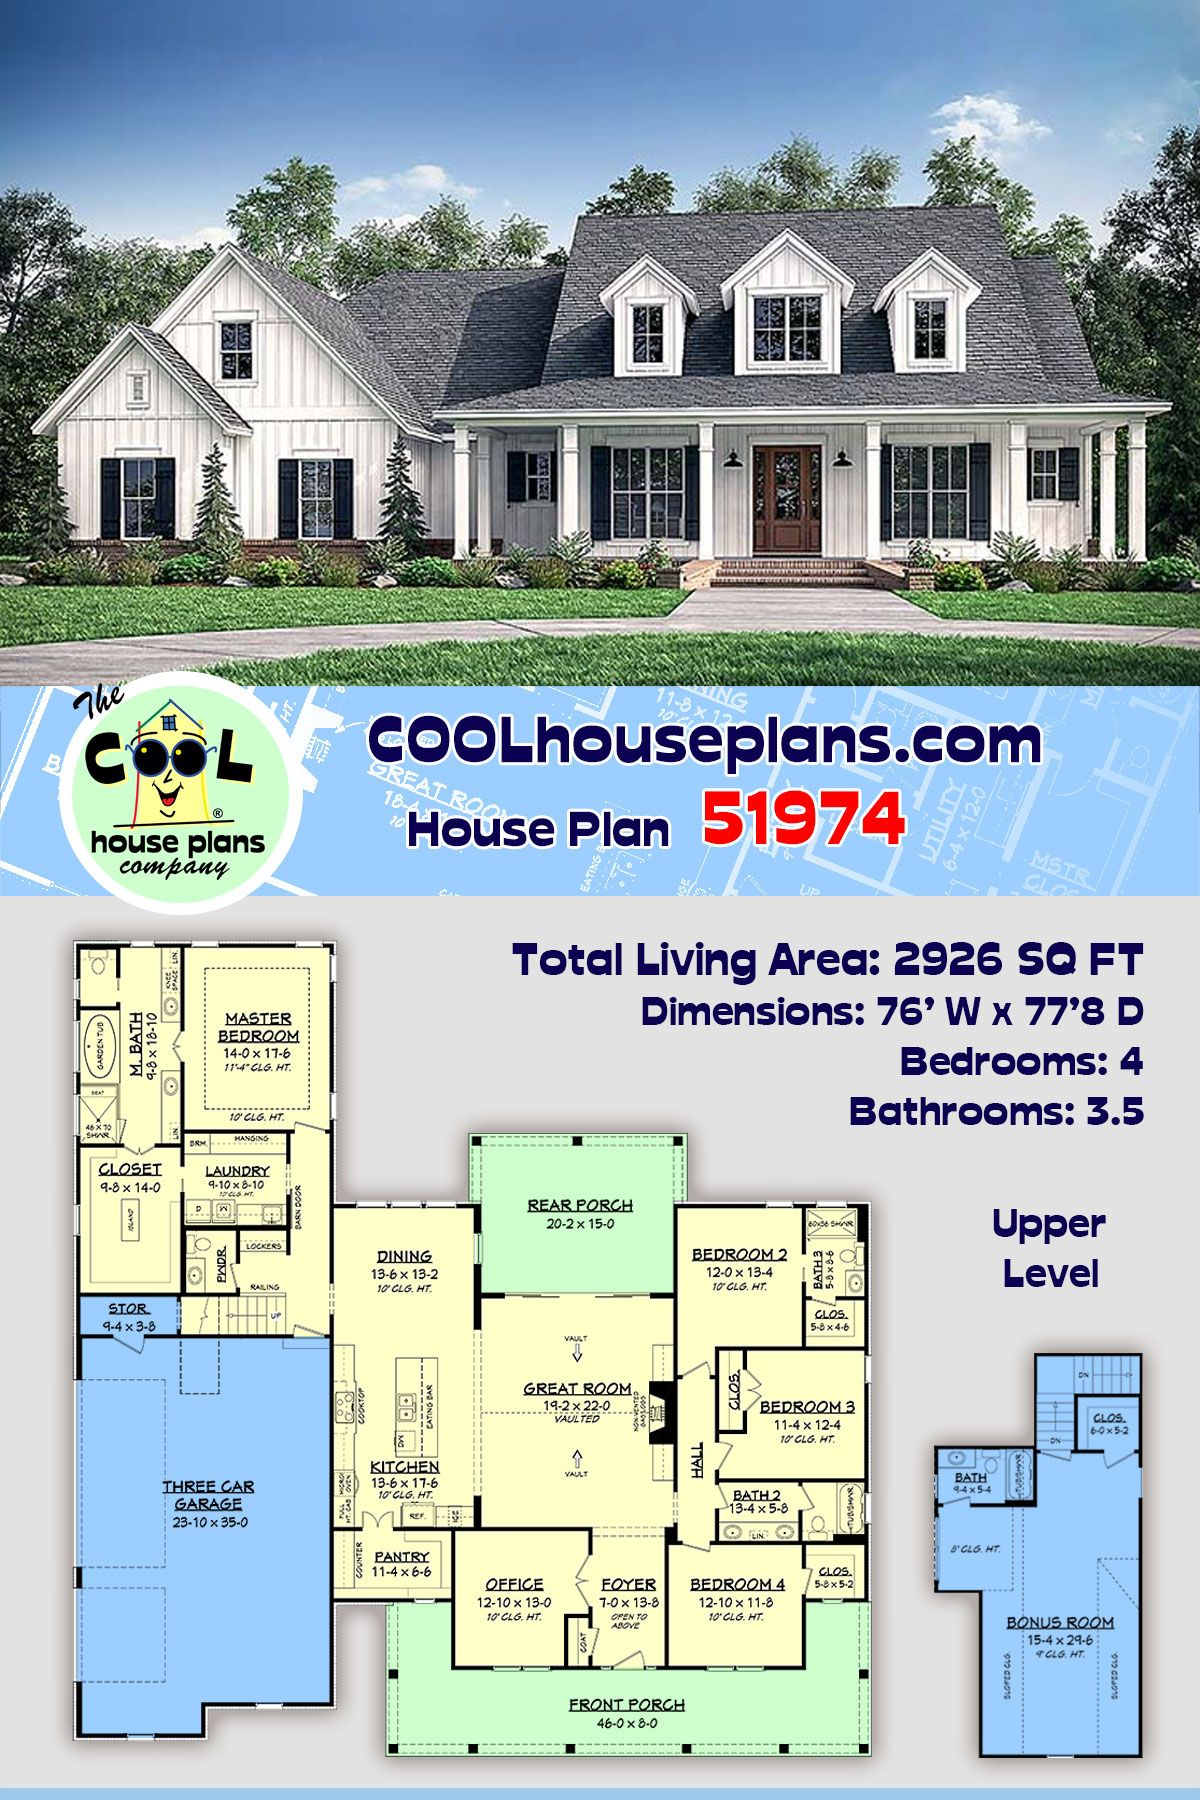 Southern Style House Plan 51974 With 4 Bed 4 Bath 3 Car Garage In 2020 Farmhouse Style House Plans Farmhouse Style House House Plans Farmhouse